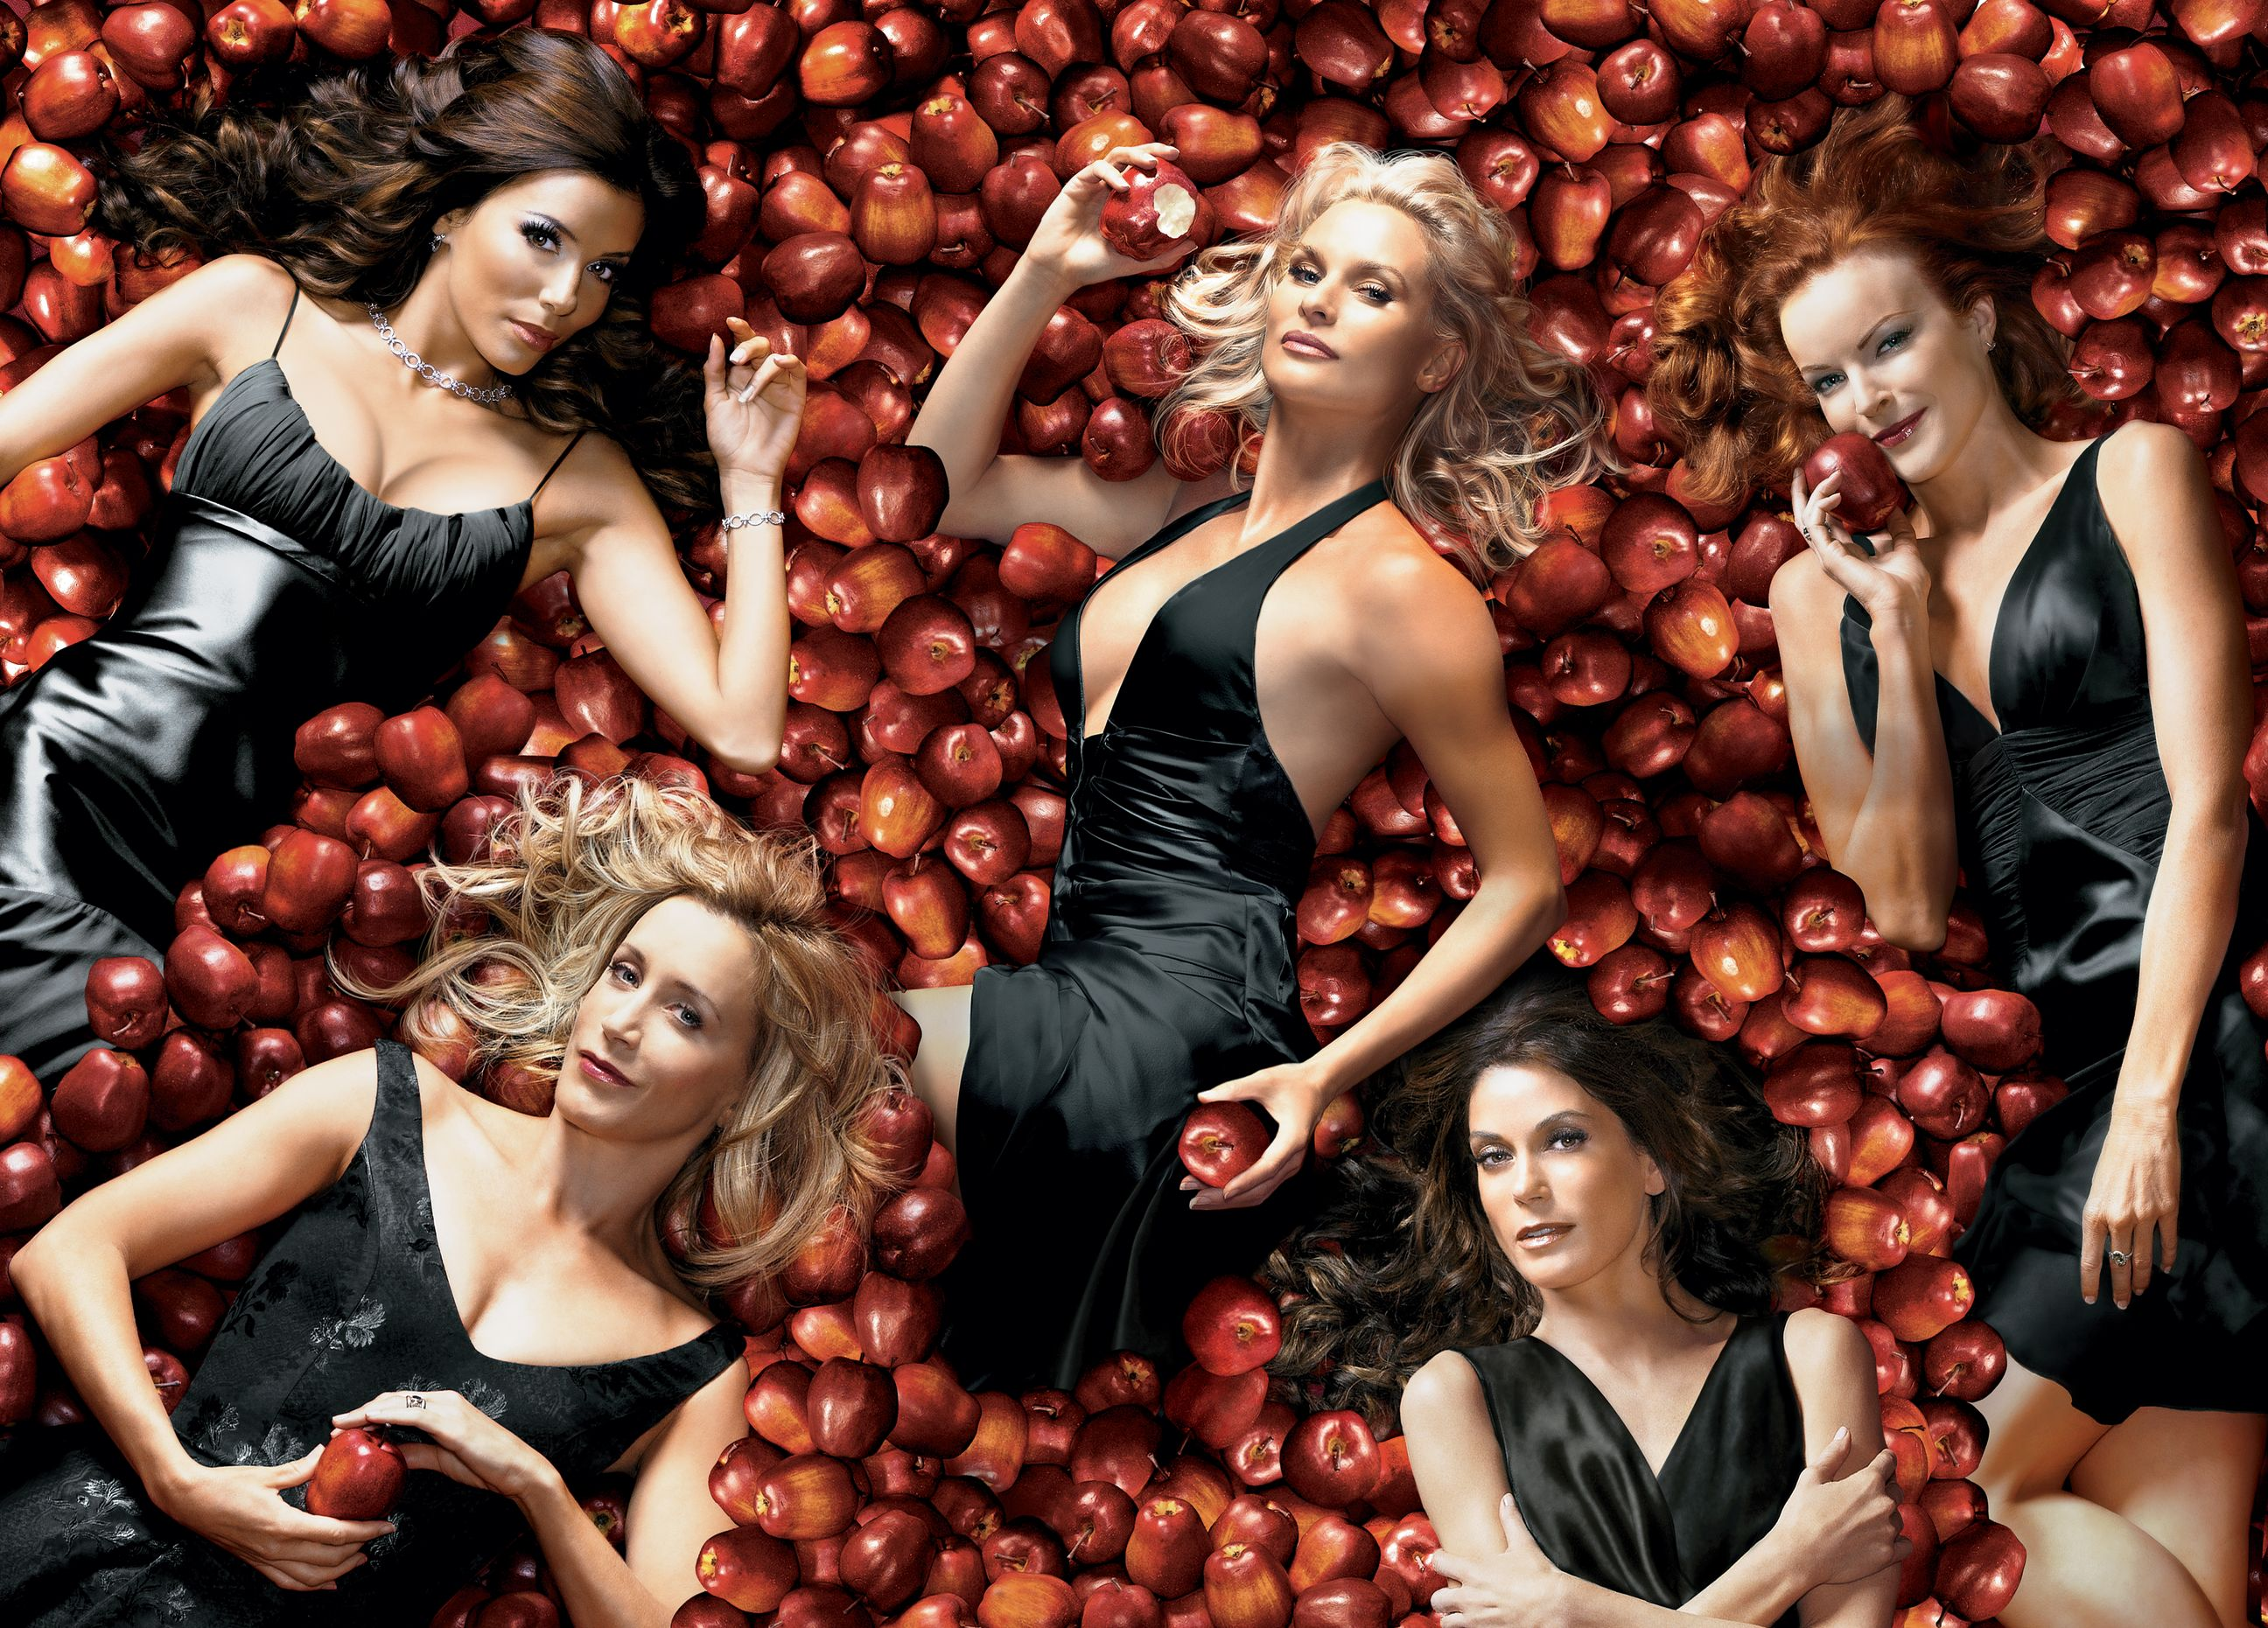 disney abc studio série desperate housewives saison 2